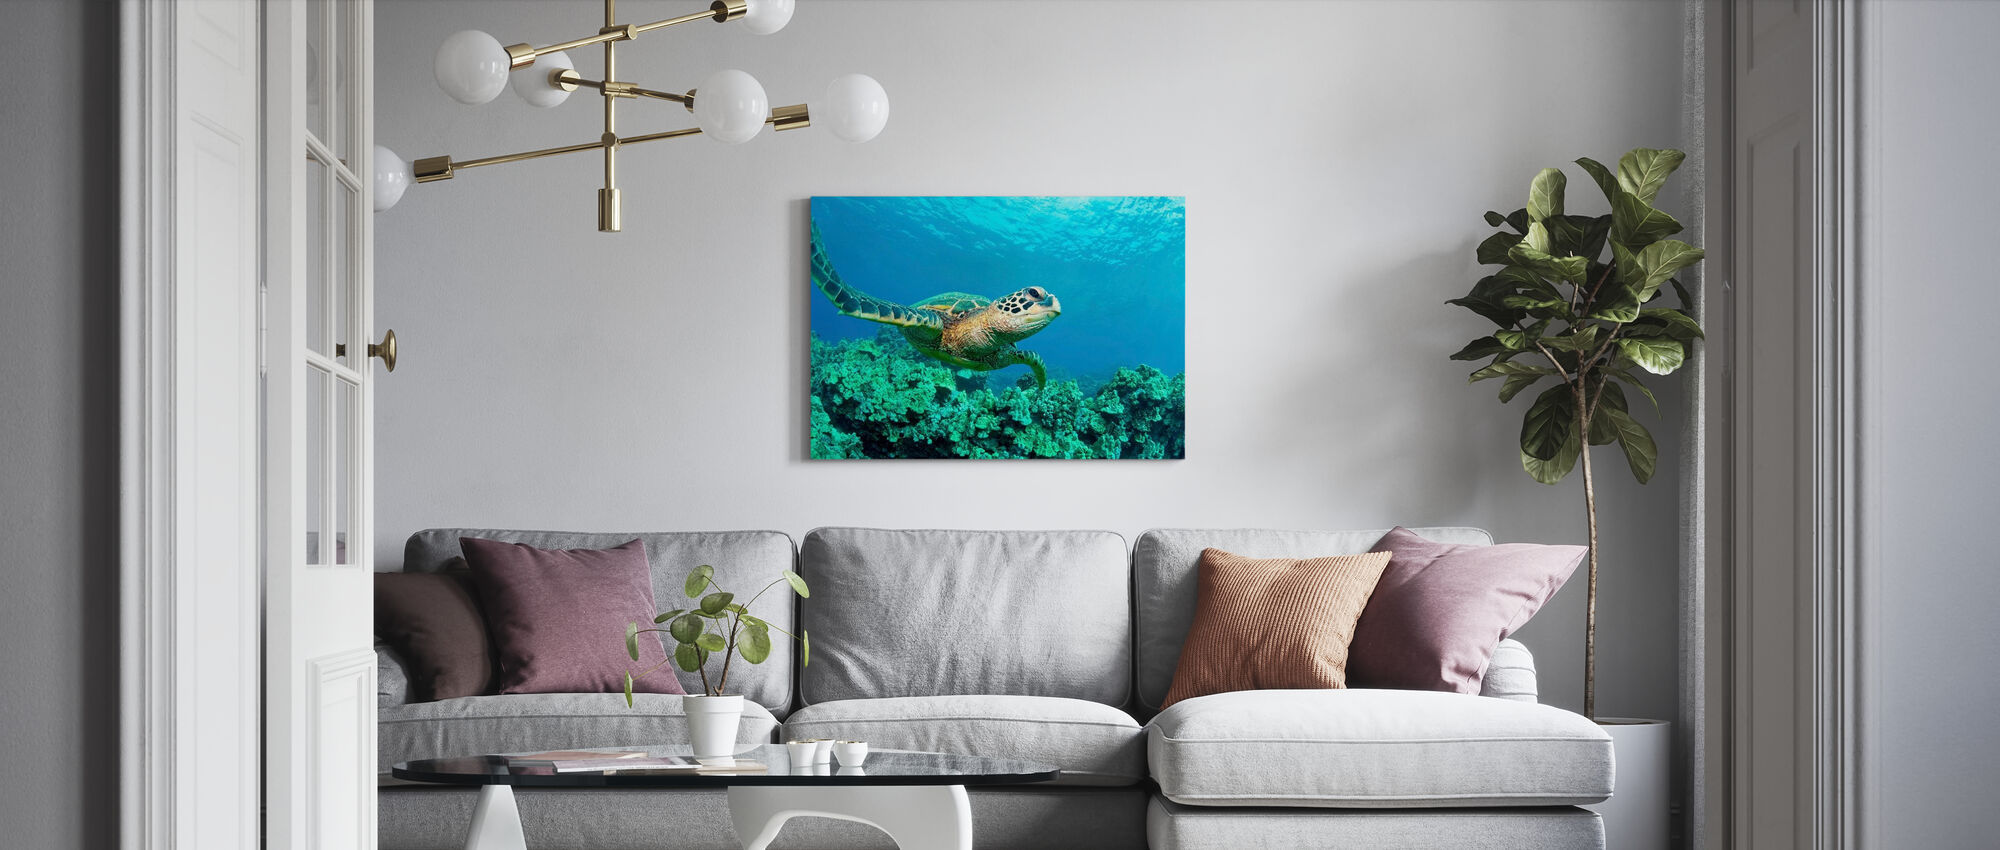 Sea Turtle in Coral - Canvas print - Living Room